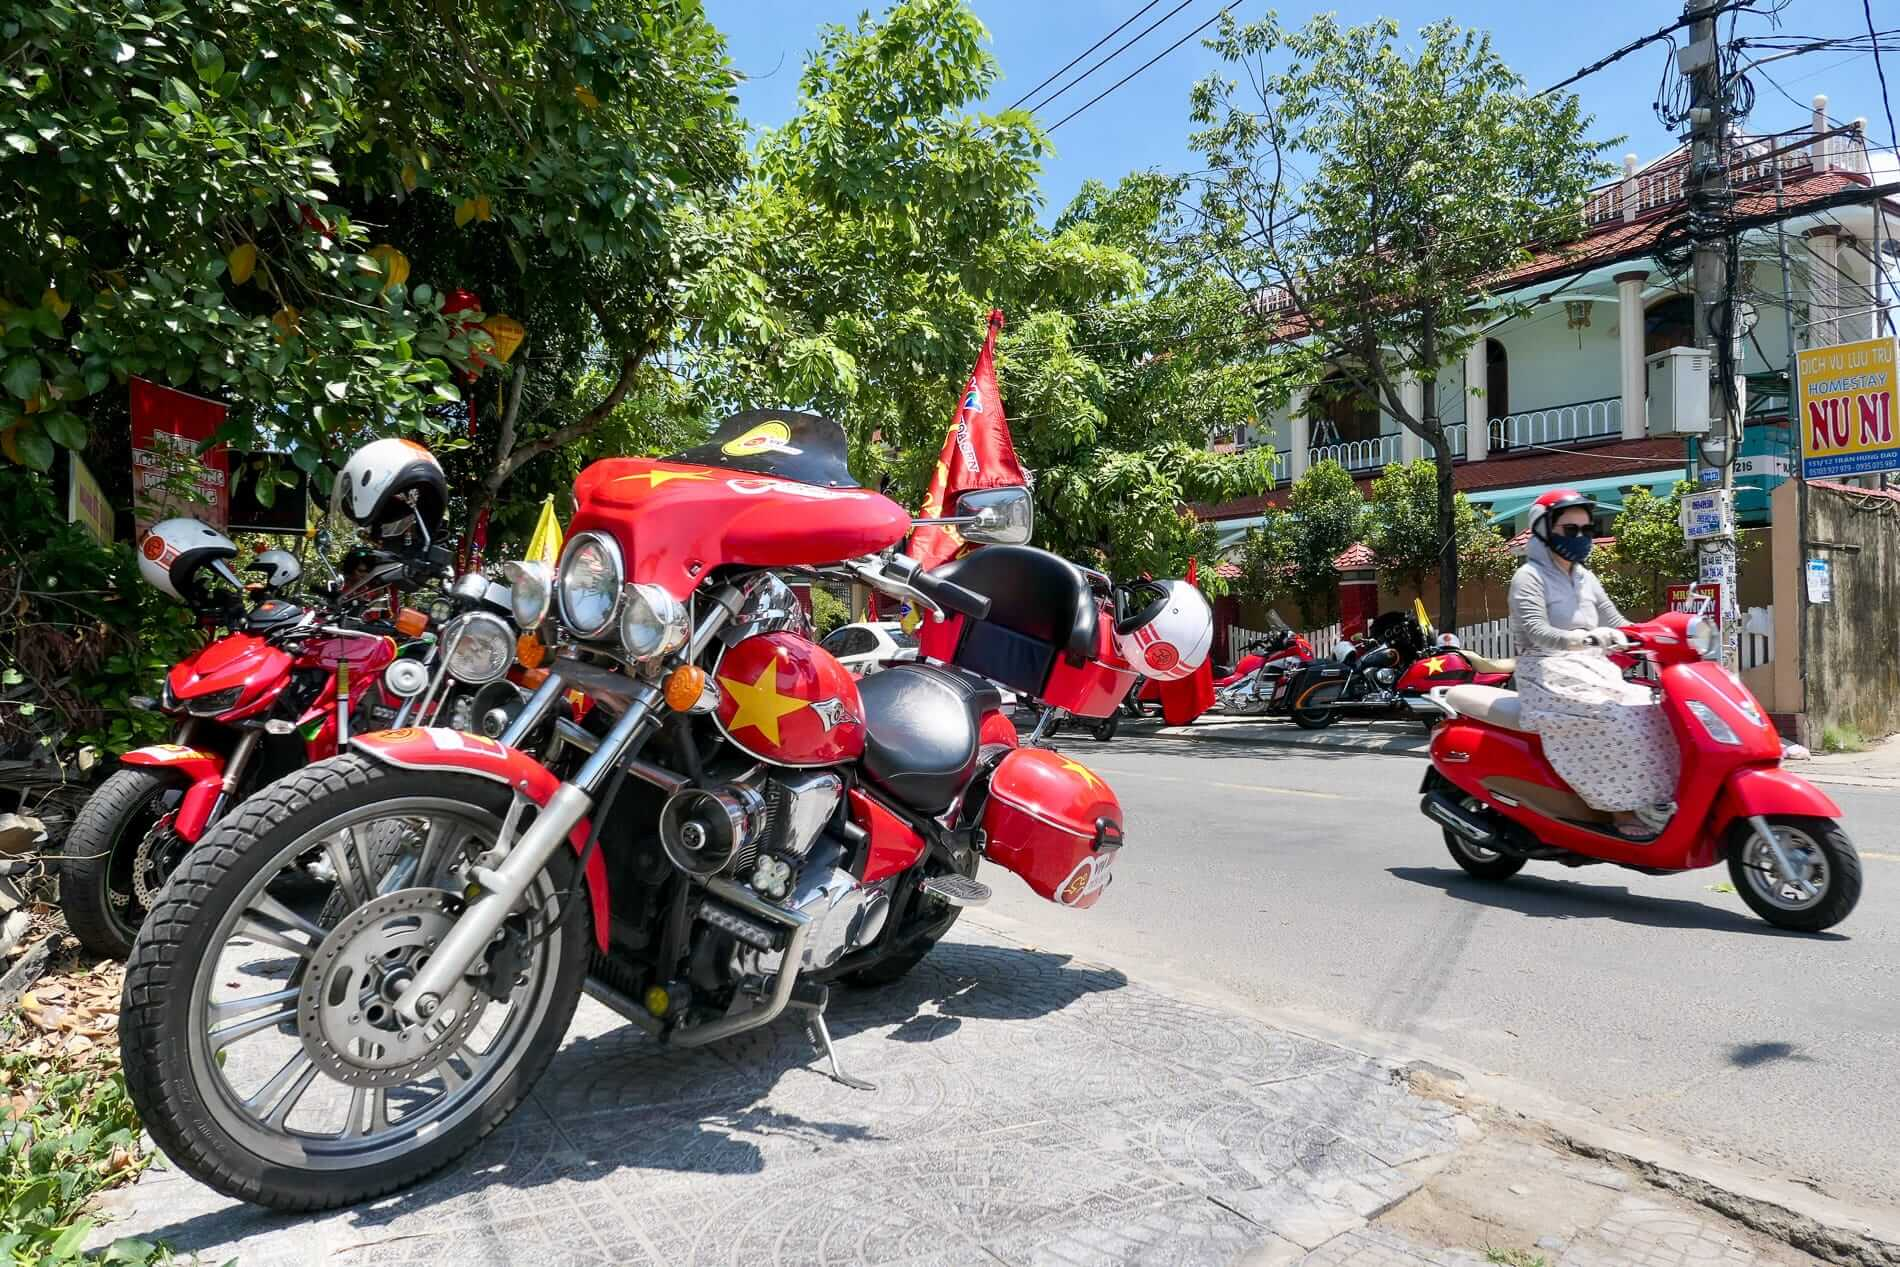 Red motorcycles parked in Vietnam